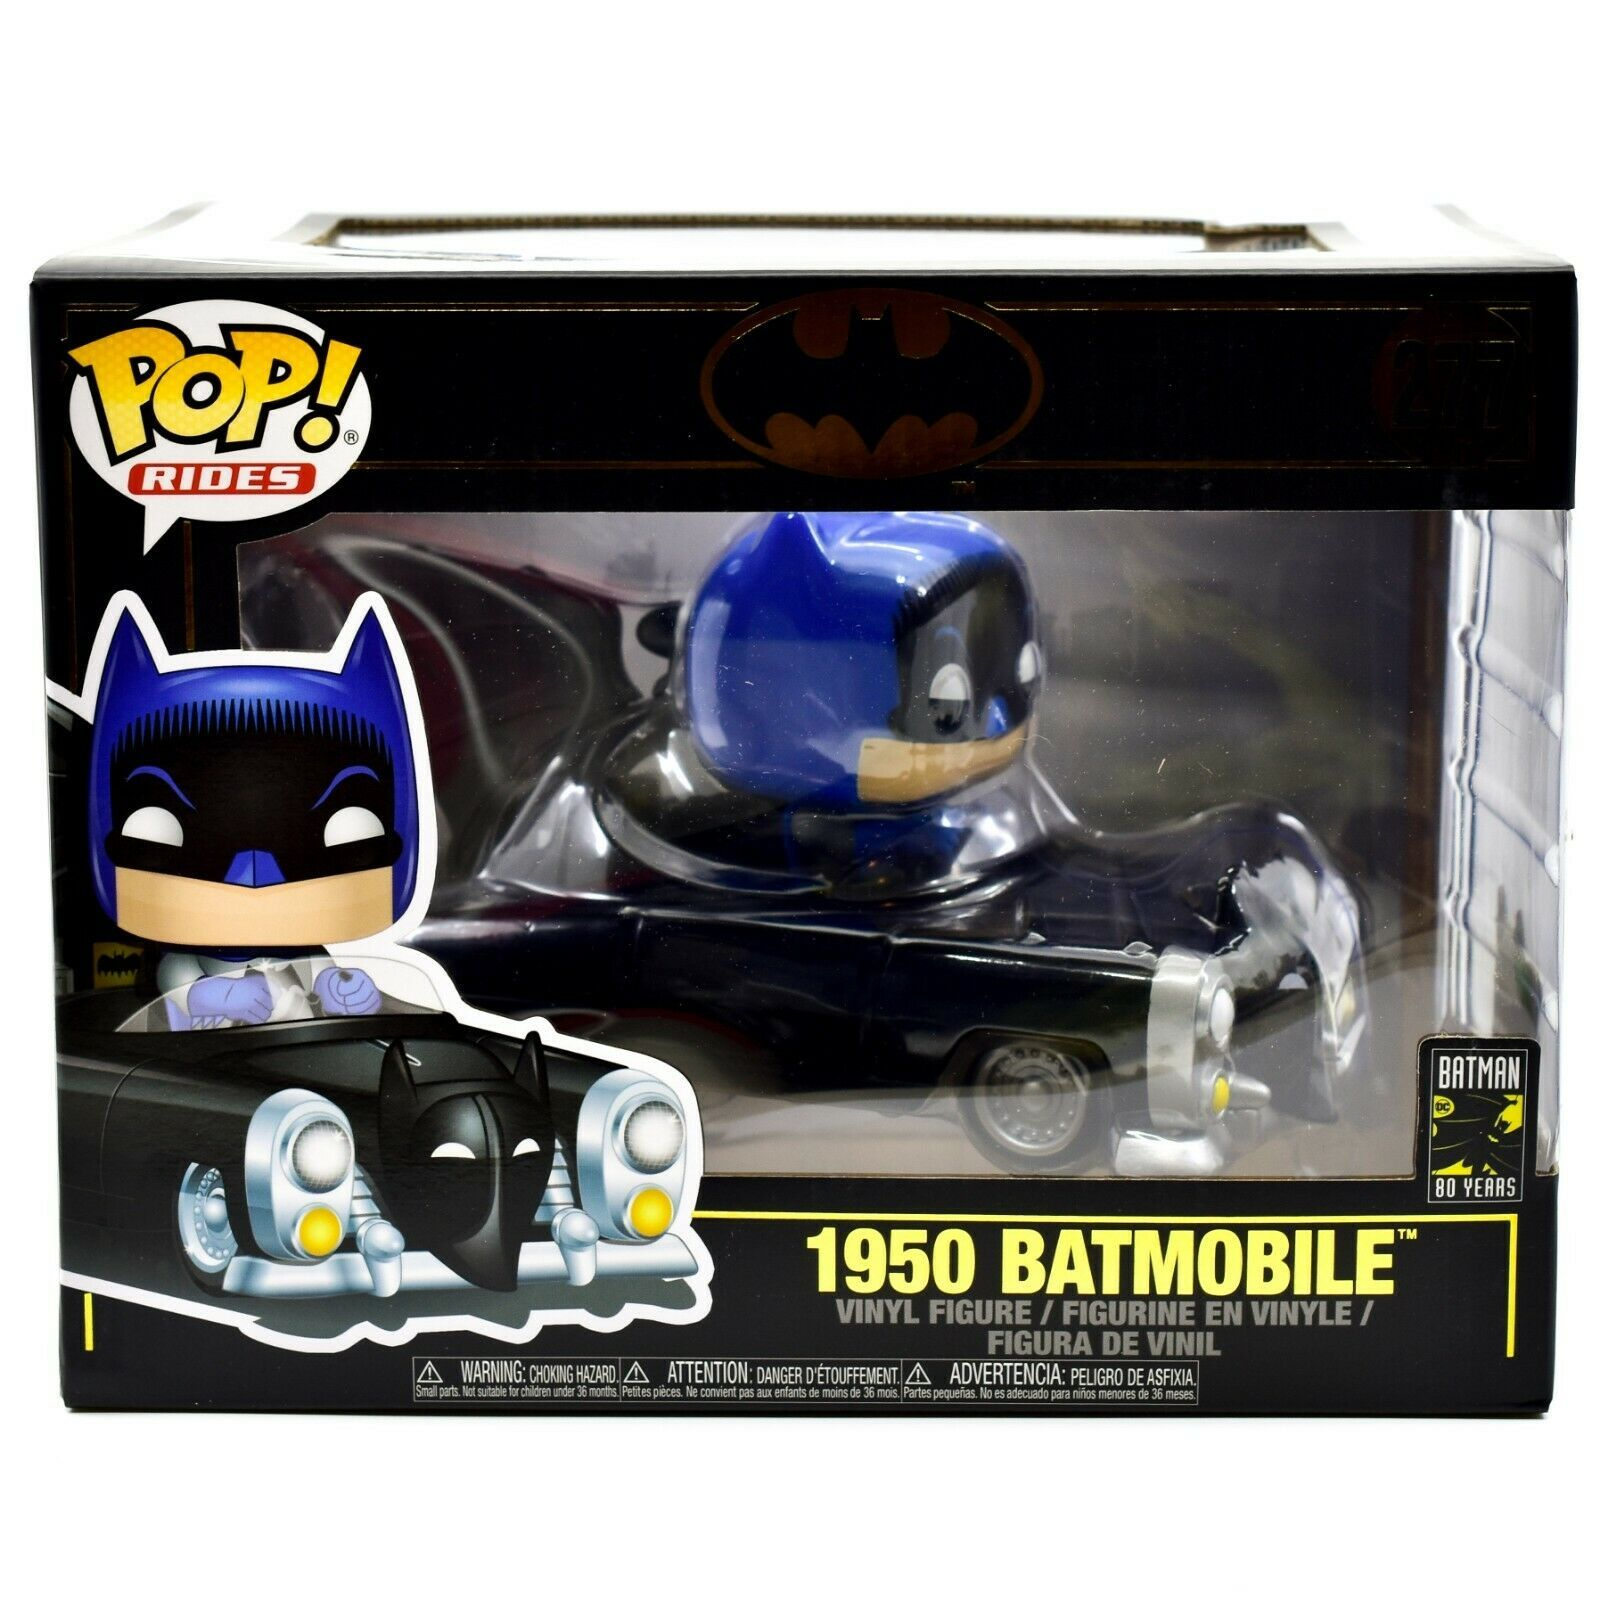 Funko Pop! DC Super Heroes Batman 1950 Batmobile 80 Years Anniversary Figure 277